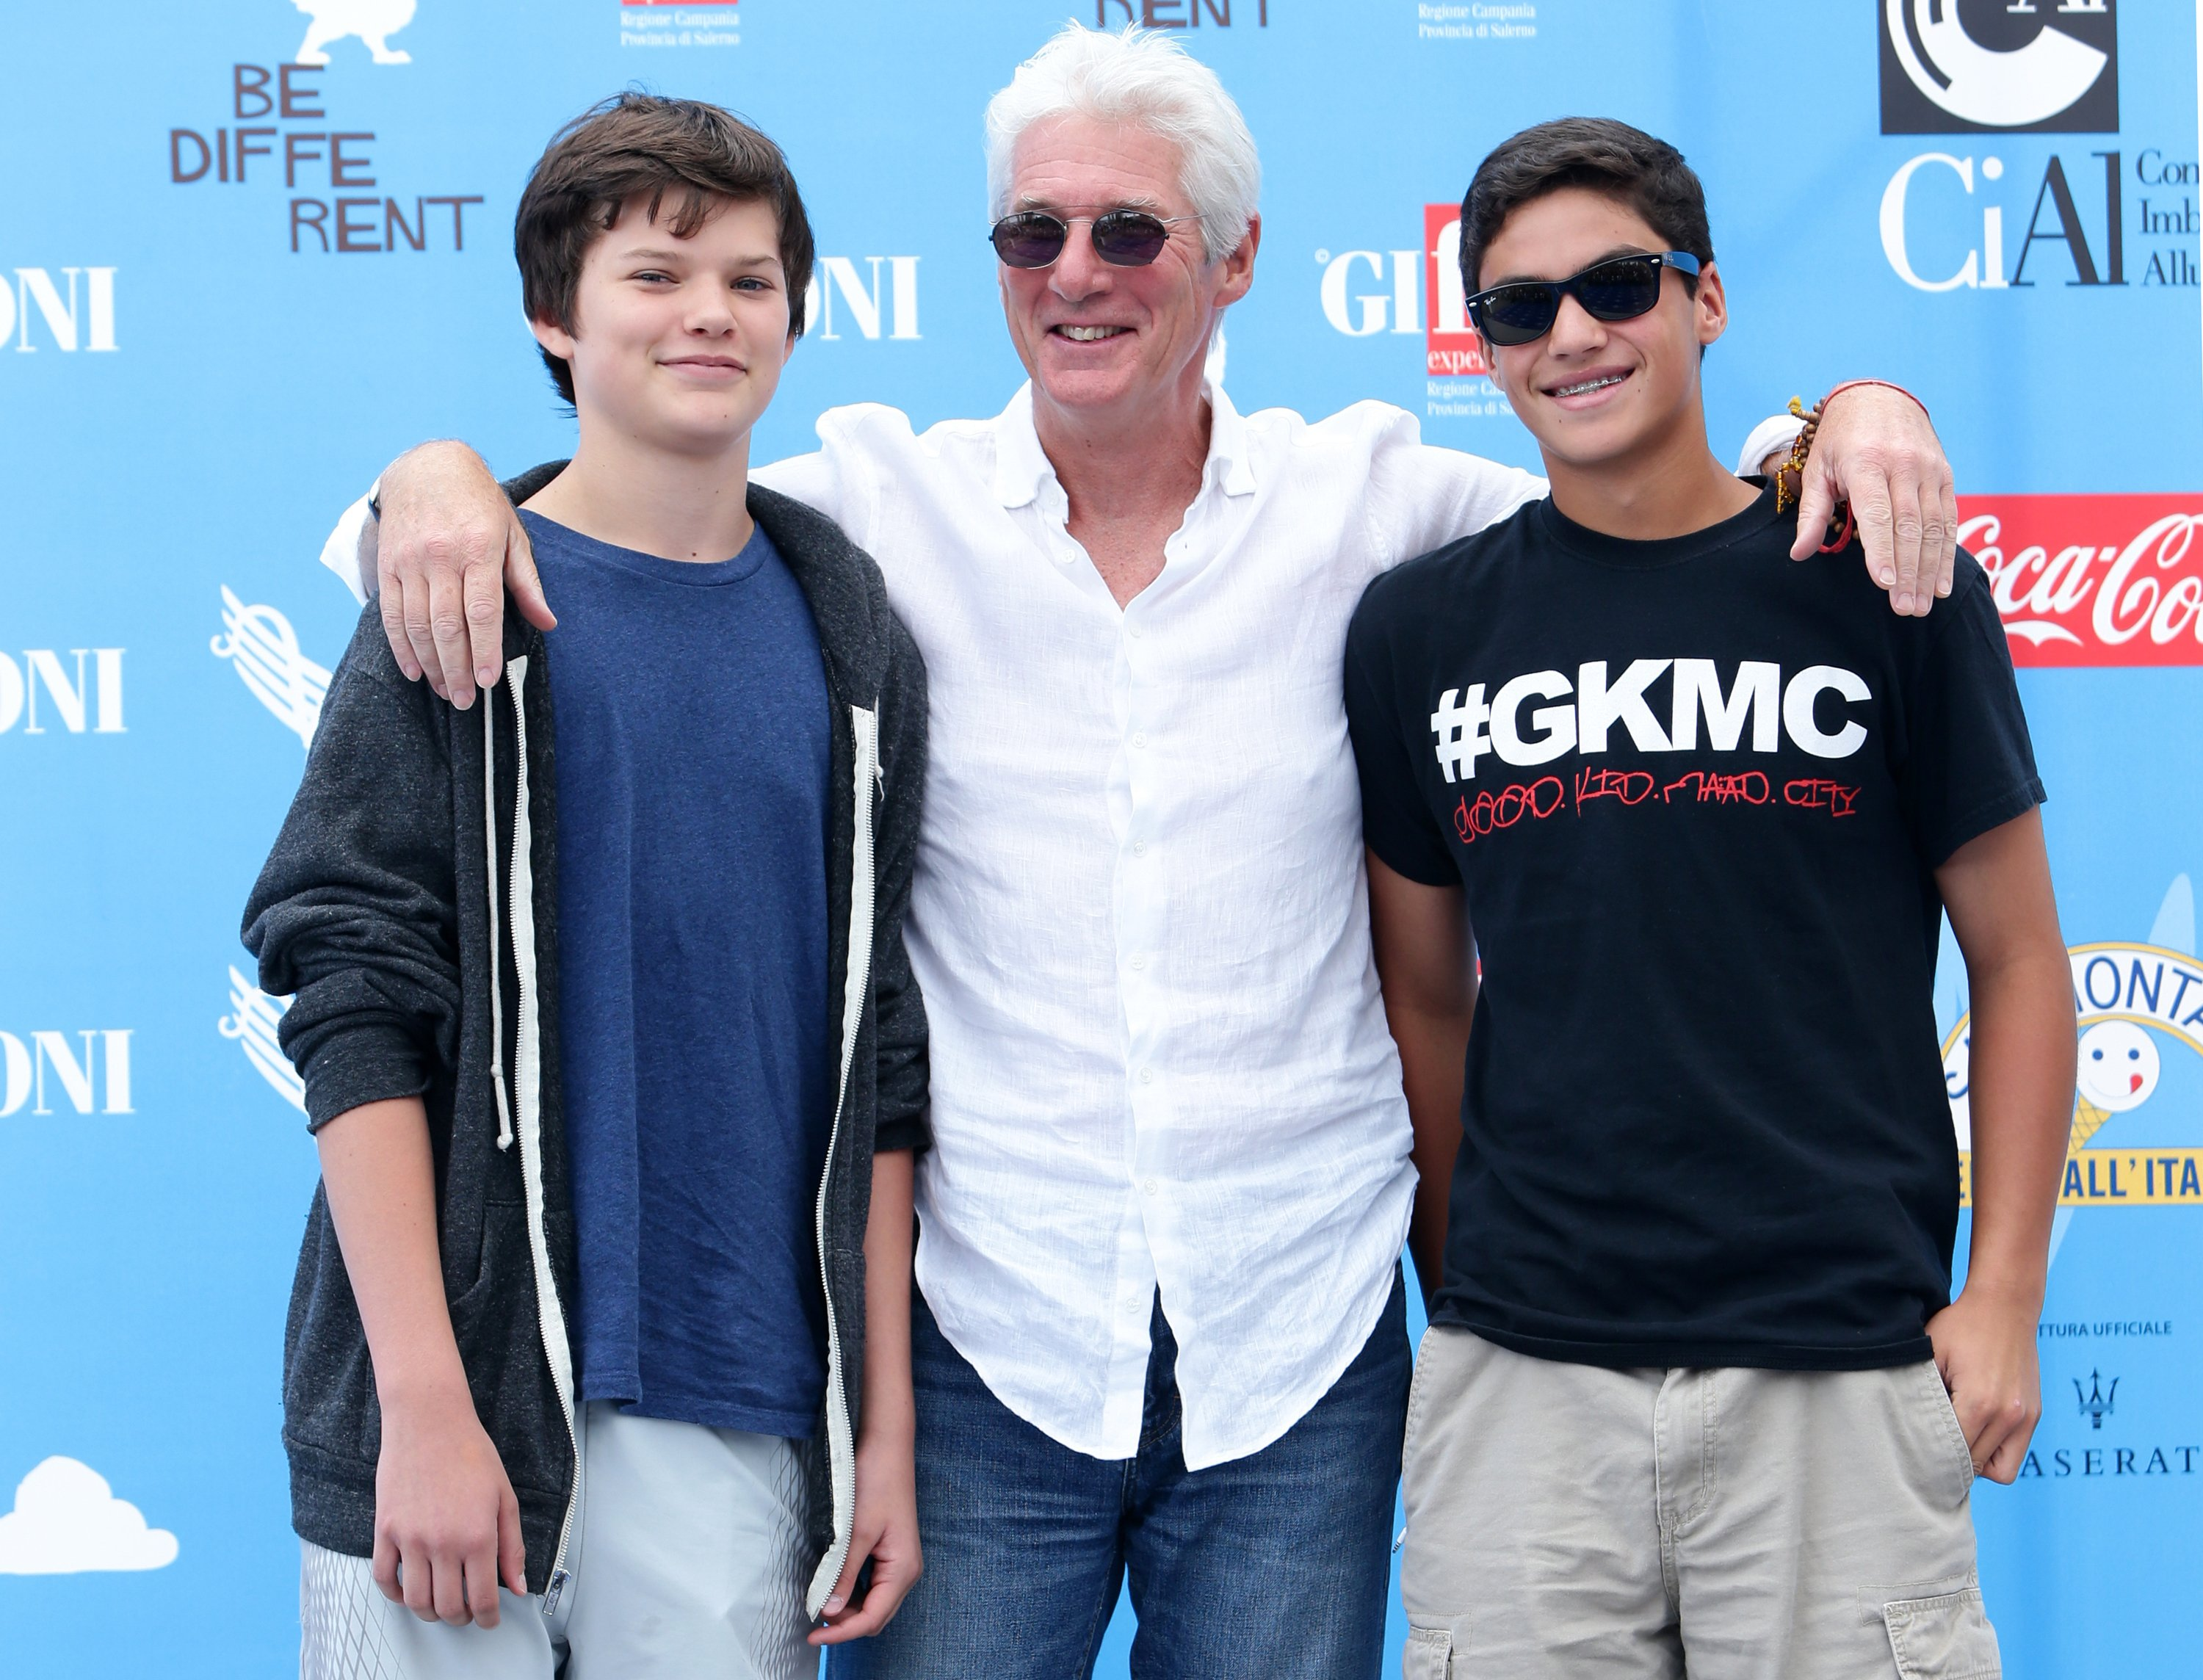 Richard Gere, his son Homer James (L) and a friend attend Giffoni Film Festival photocall on July 22, 2014, in Giffoni Valle Piana, Italy. | Source: Getty Images